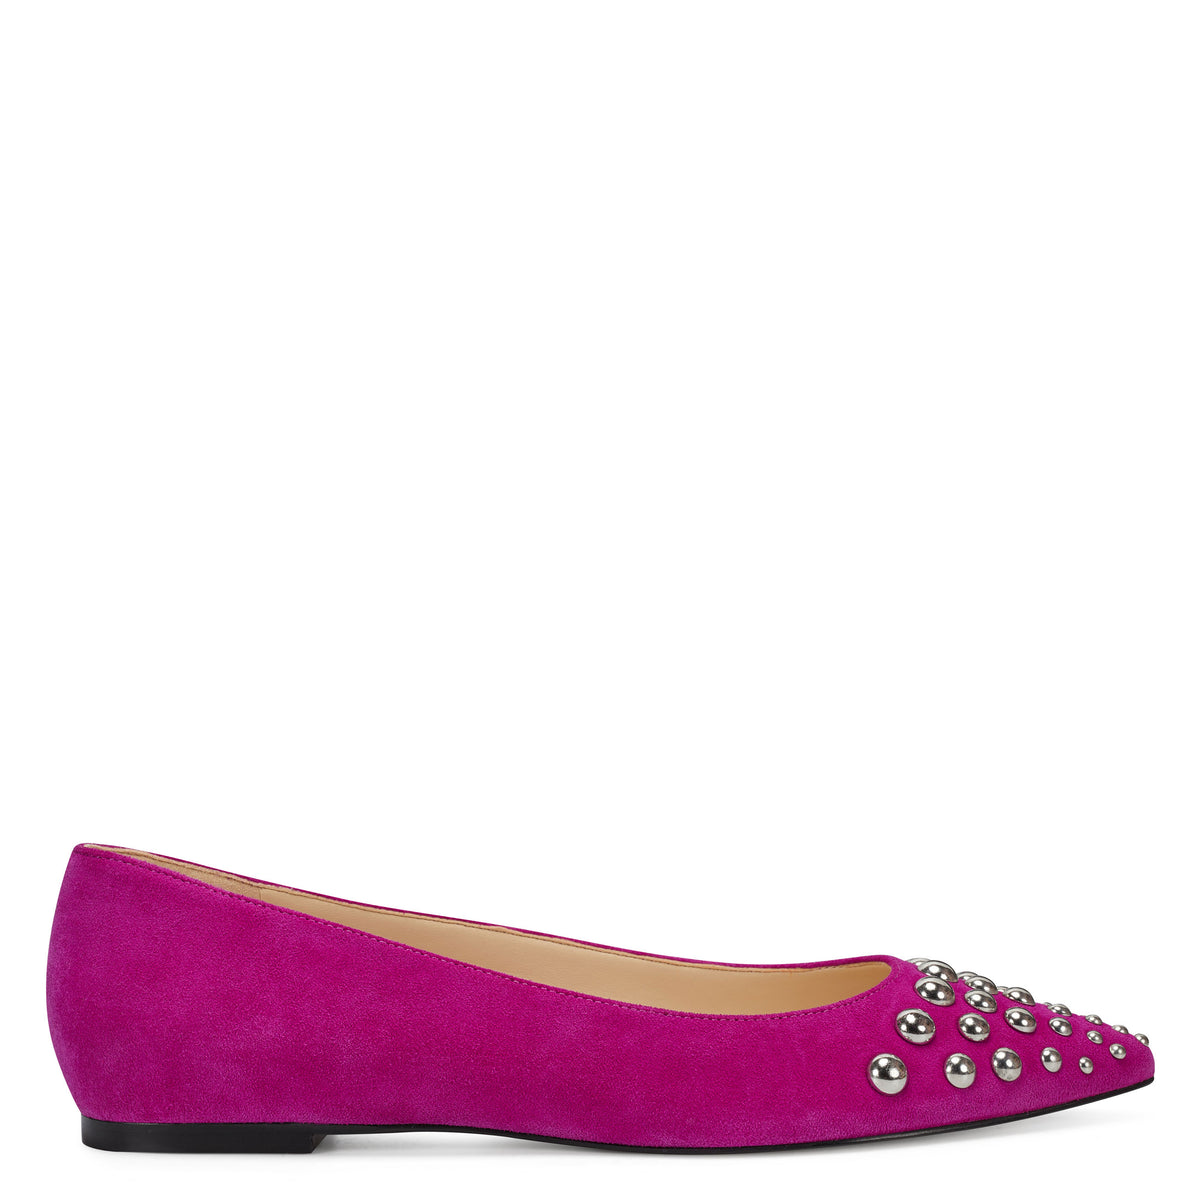 Adalyn Pointed Toe Flats